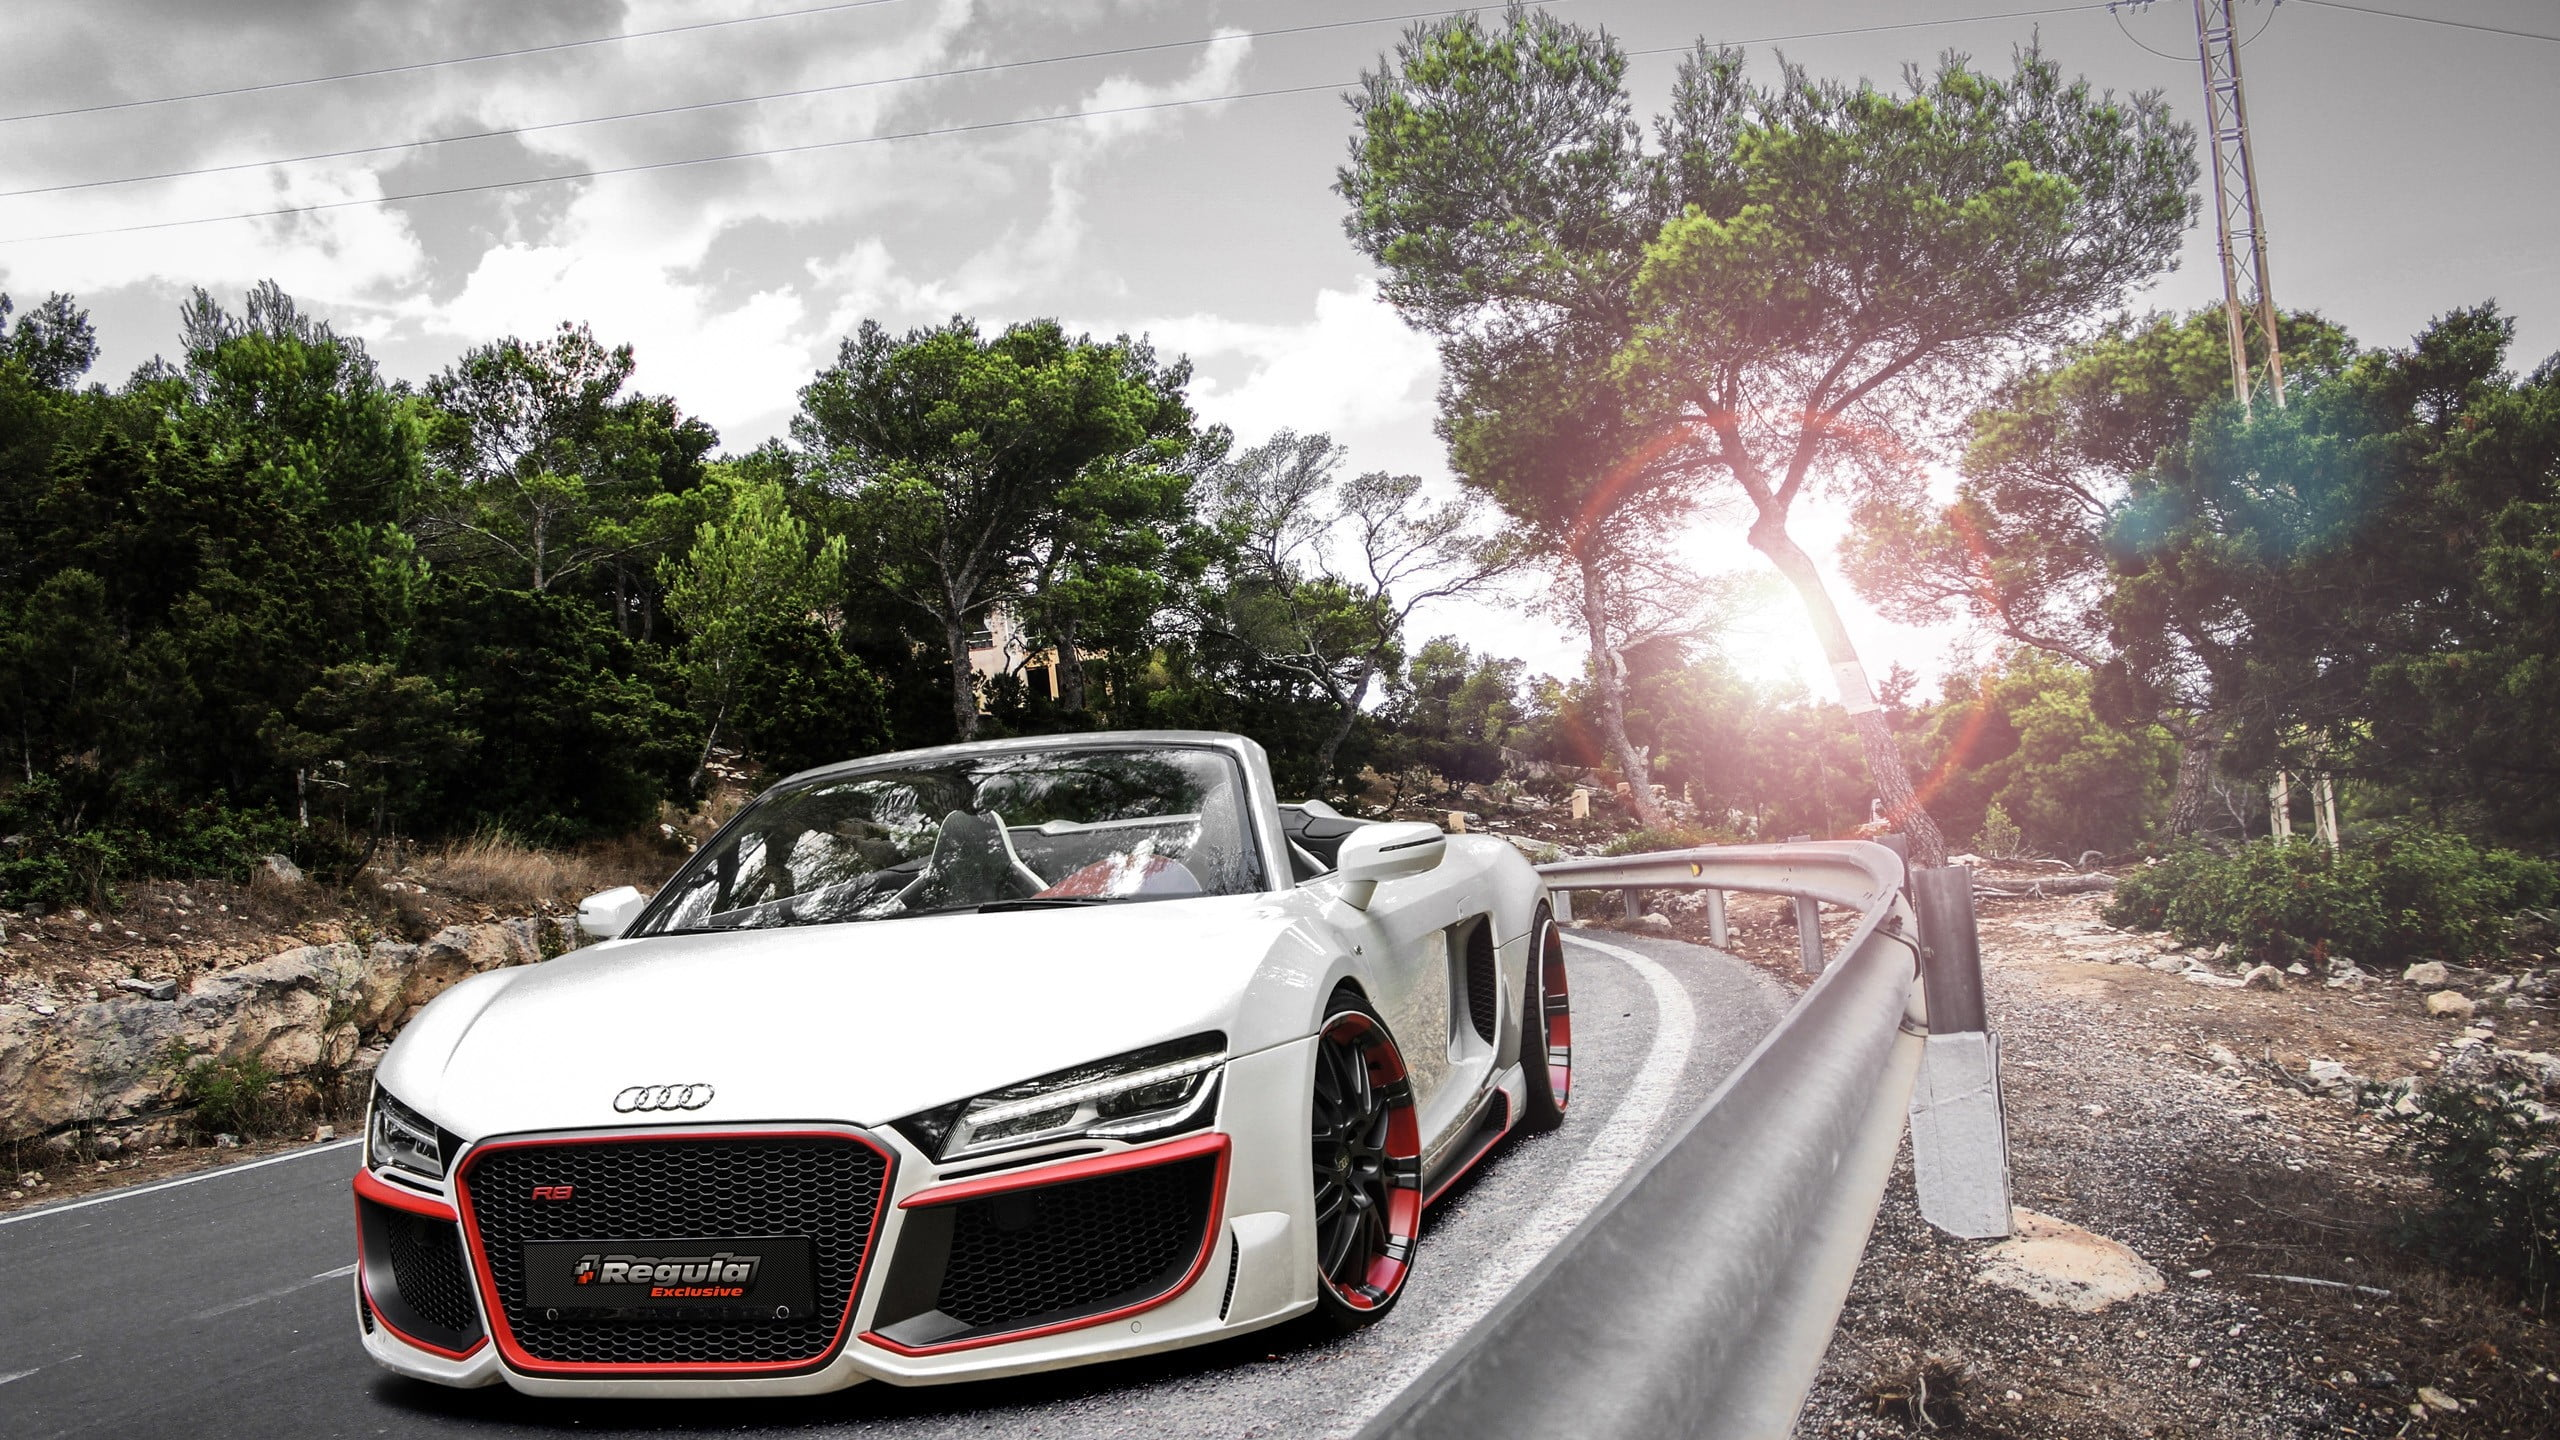 White and red Audi R8 GT Spyder on road HD wallpaper Wallpaper Flare 2560x1440